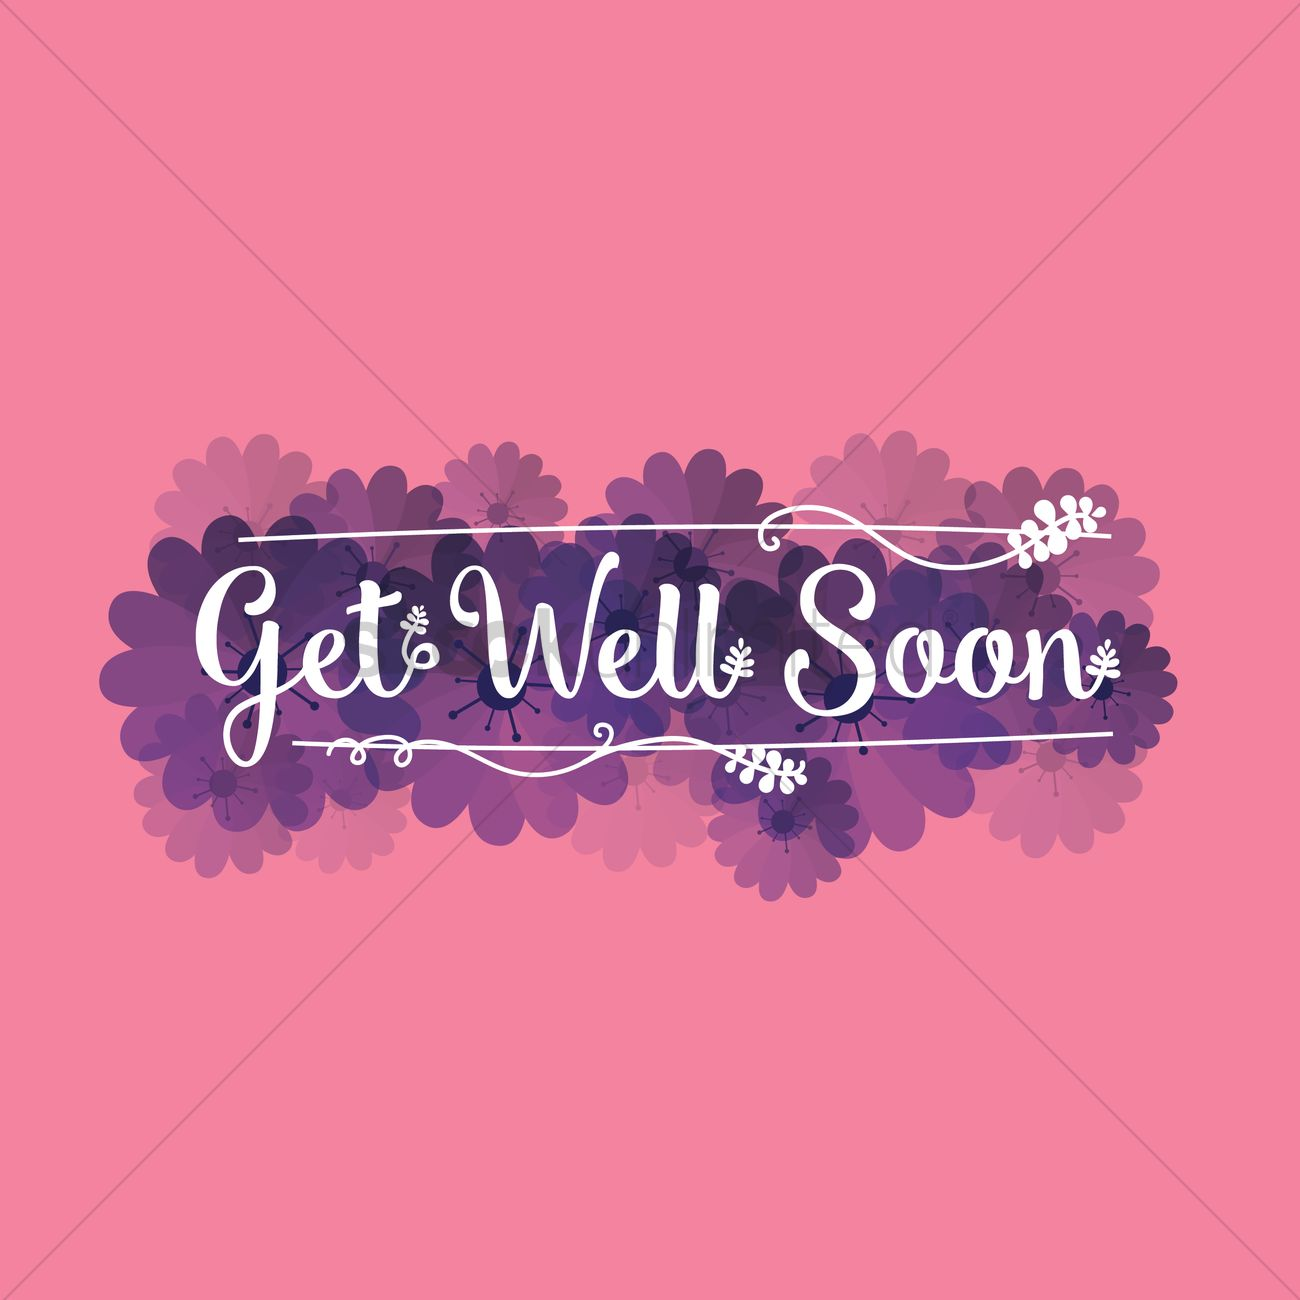 Compelling Get Well Soon Wallpaper Vector Graphic Get Well Soon Wallpaper Vector Image Stockunlimited Get Better Soon Gifts Get Better Soon Images cards Get Better Soon